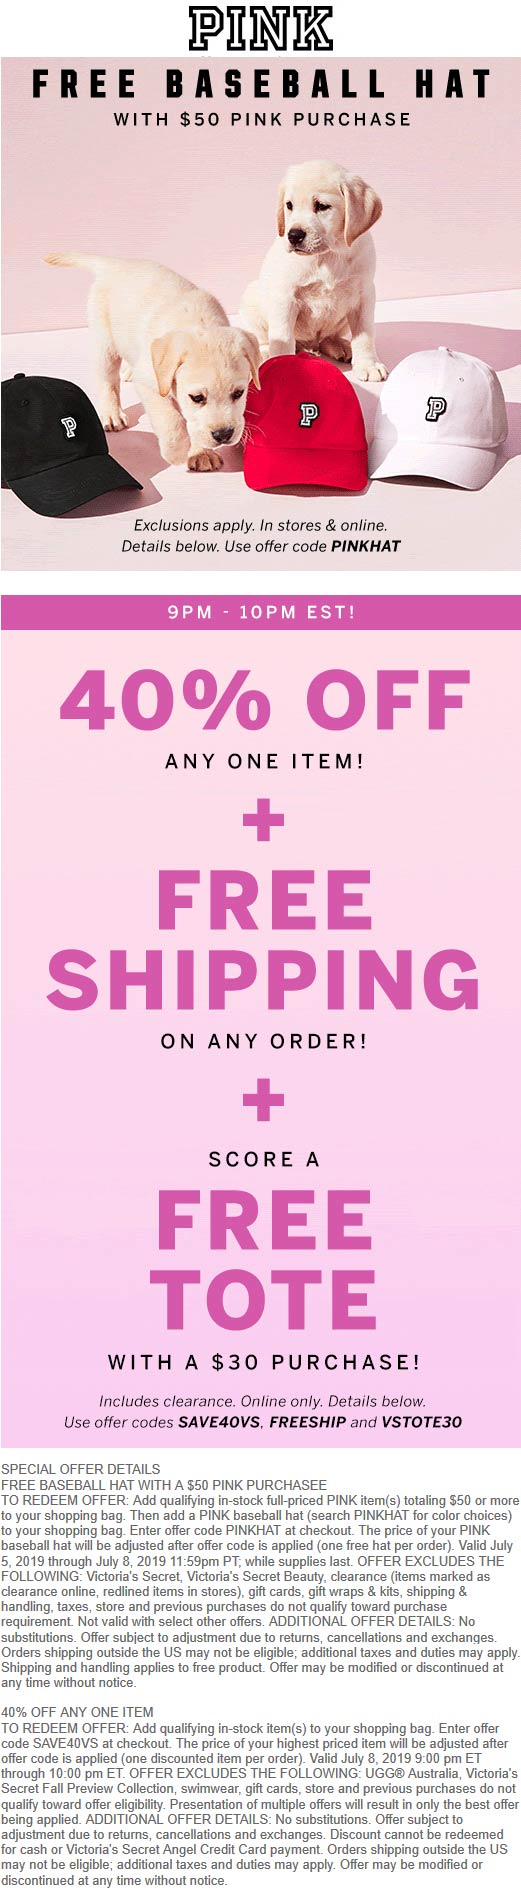 Victorias Secret Coupon October 2019 Free hat at Victorias Secret PINK, also online + 40% off a single item tonight via promo PINKHAT